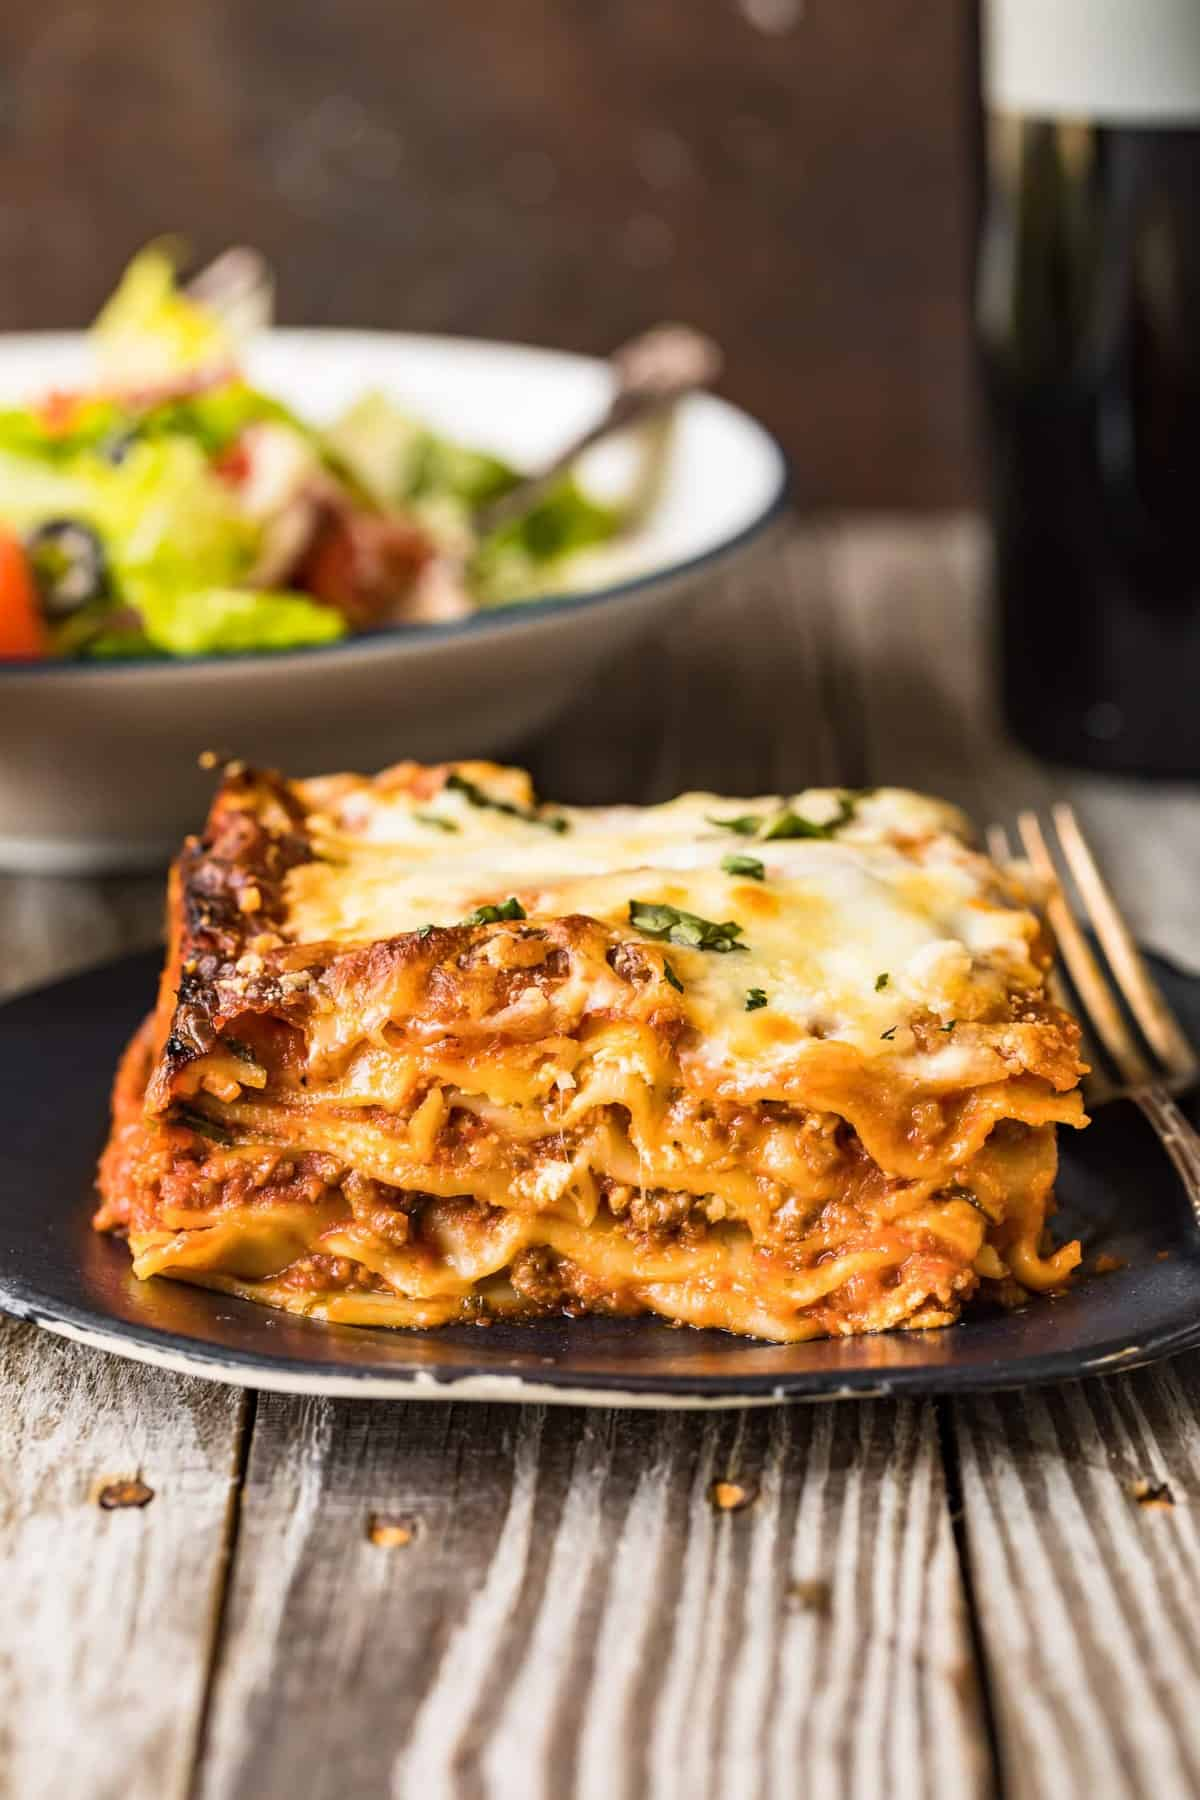 Lasagna served on a blue plate